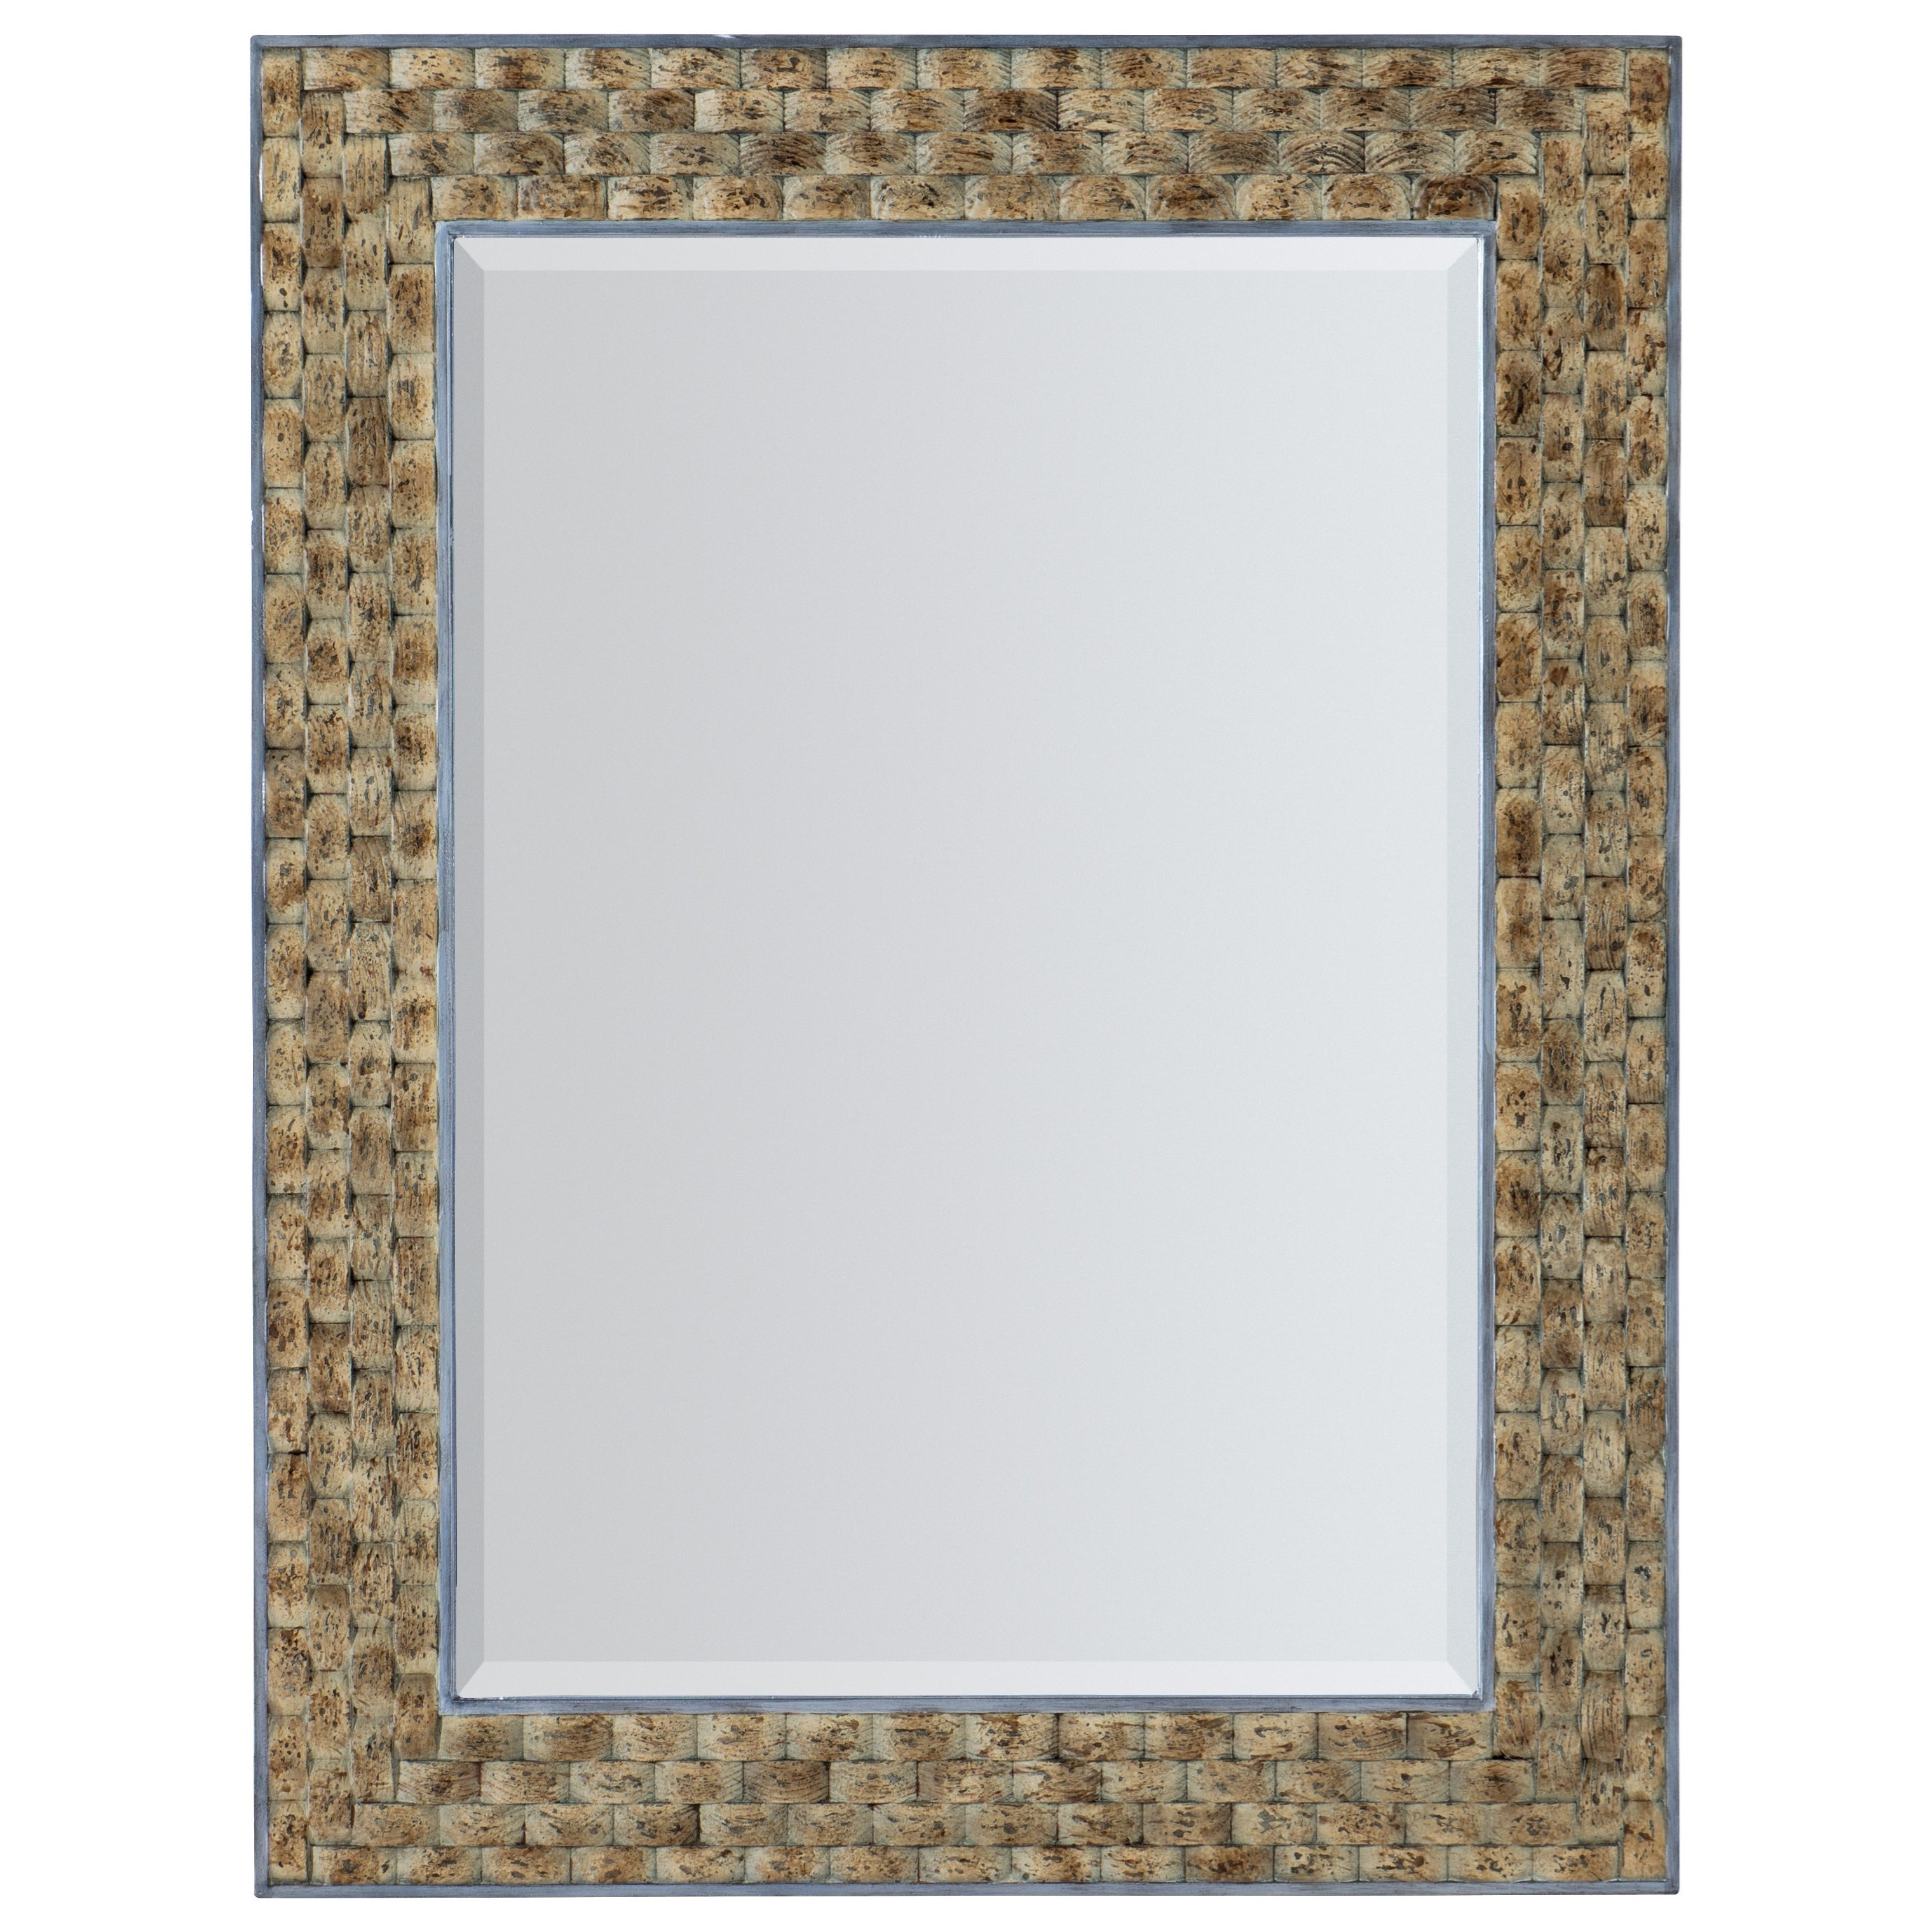 Surfrider Portrait Mirror by Hooker Furniture at Alison Craig Home Furnishings